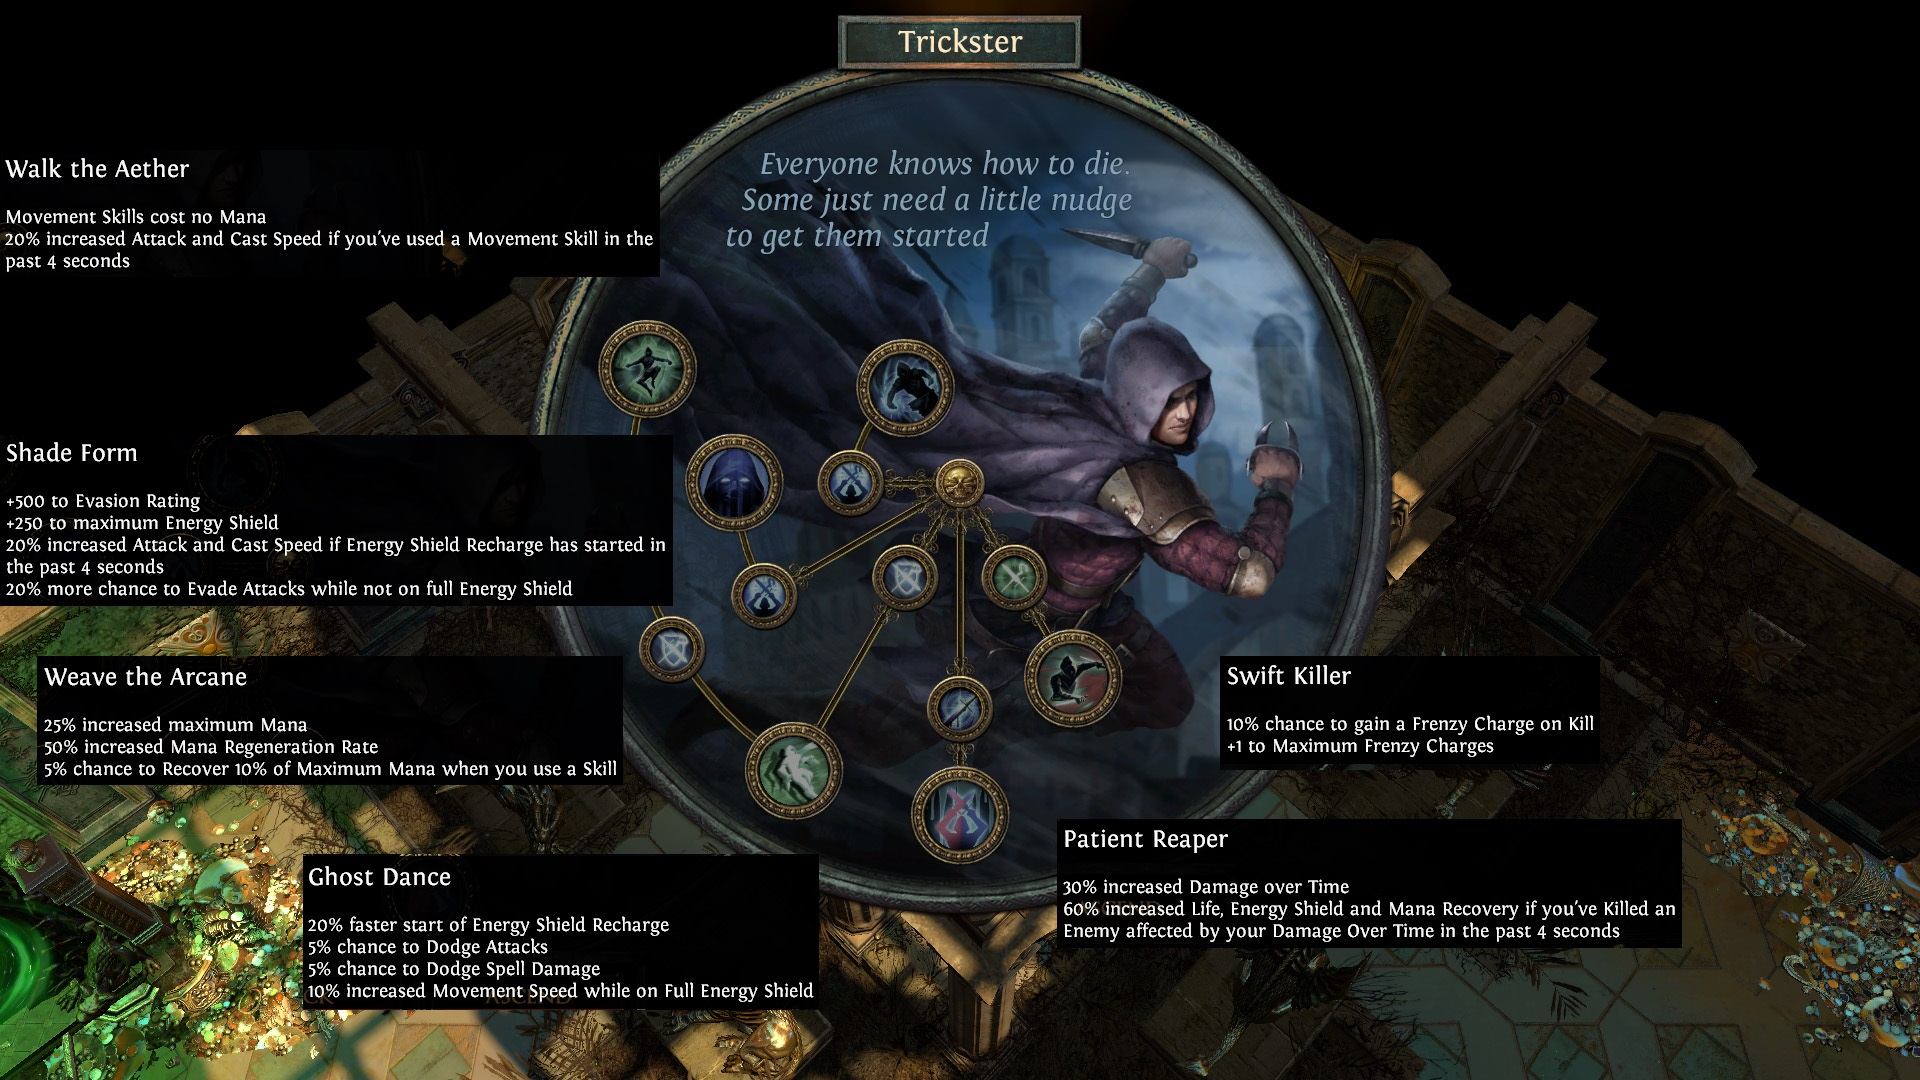 Preview] GG Reveals the Trickster - Interview and Full Class Skills